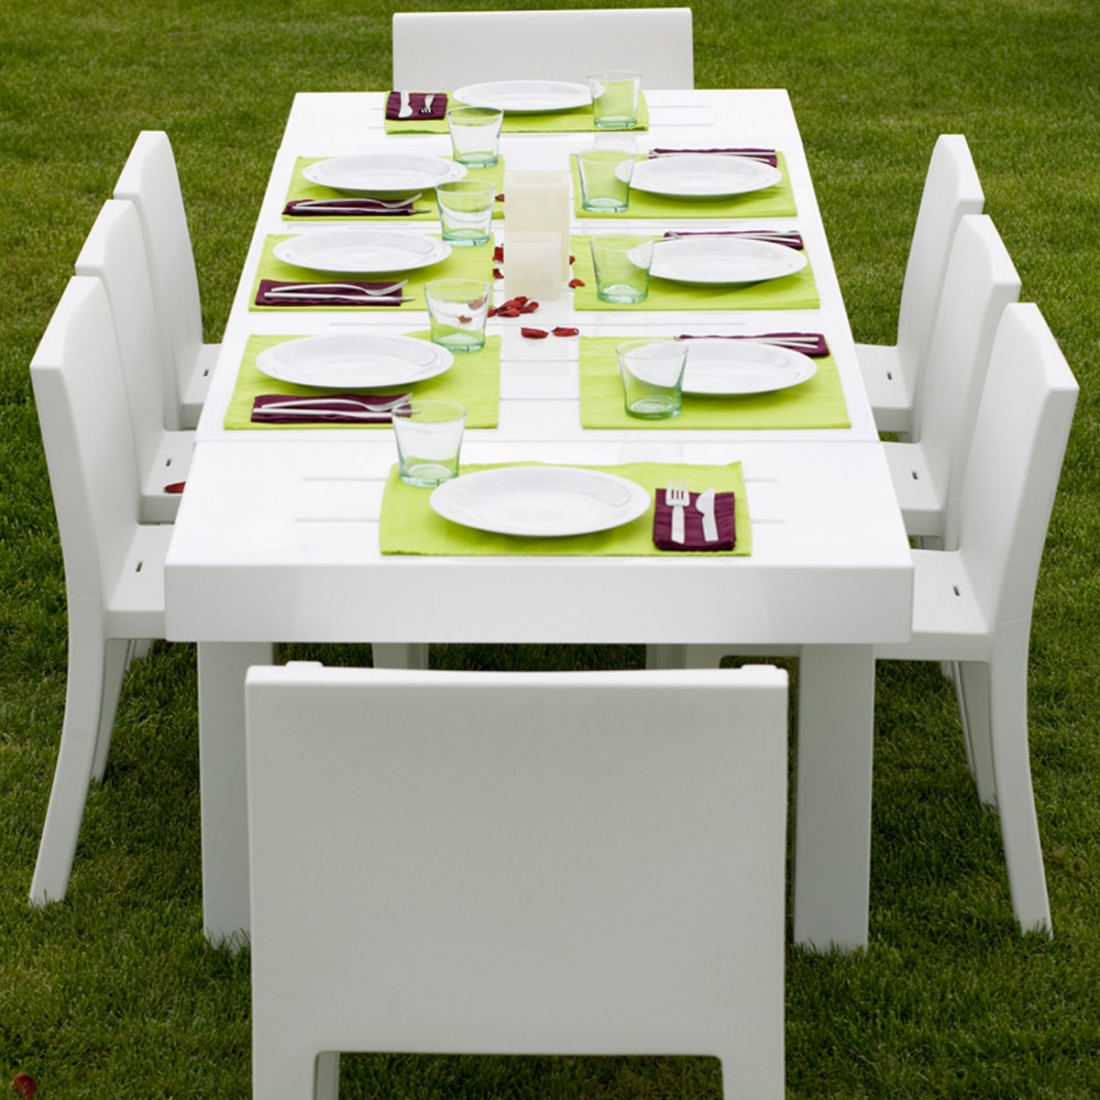 Emejing salon de jardin polypropylene design gallery for Table de jardin 8 personnes